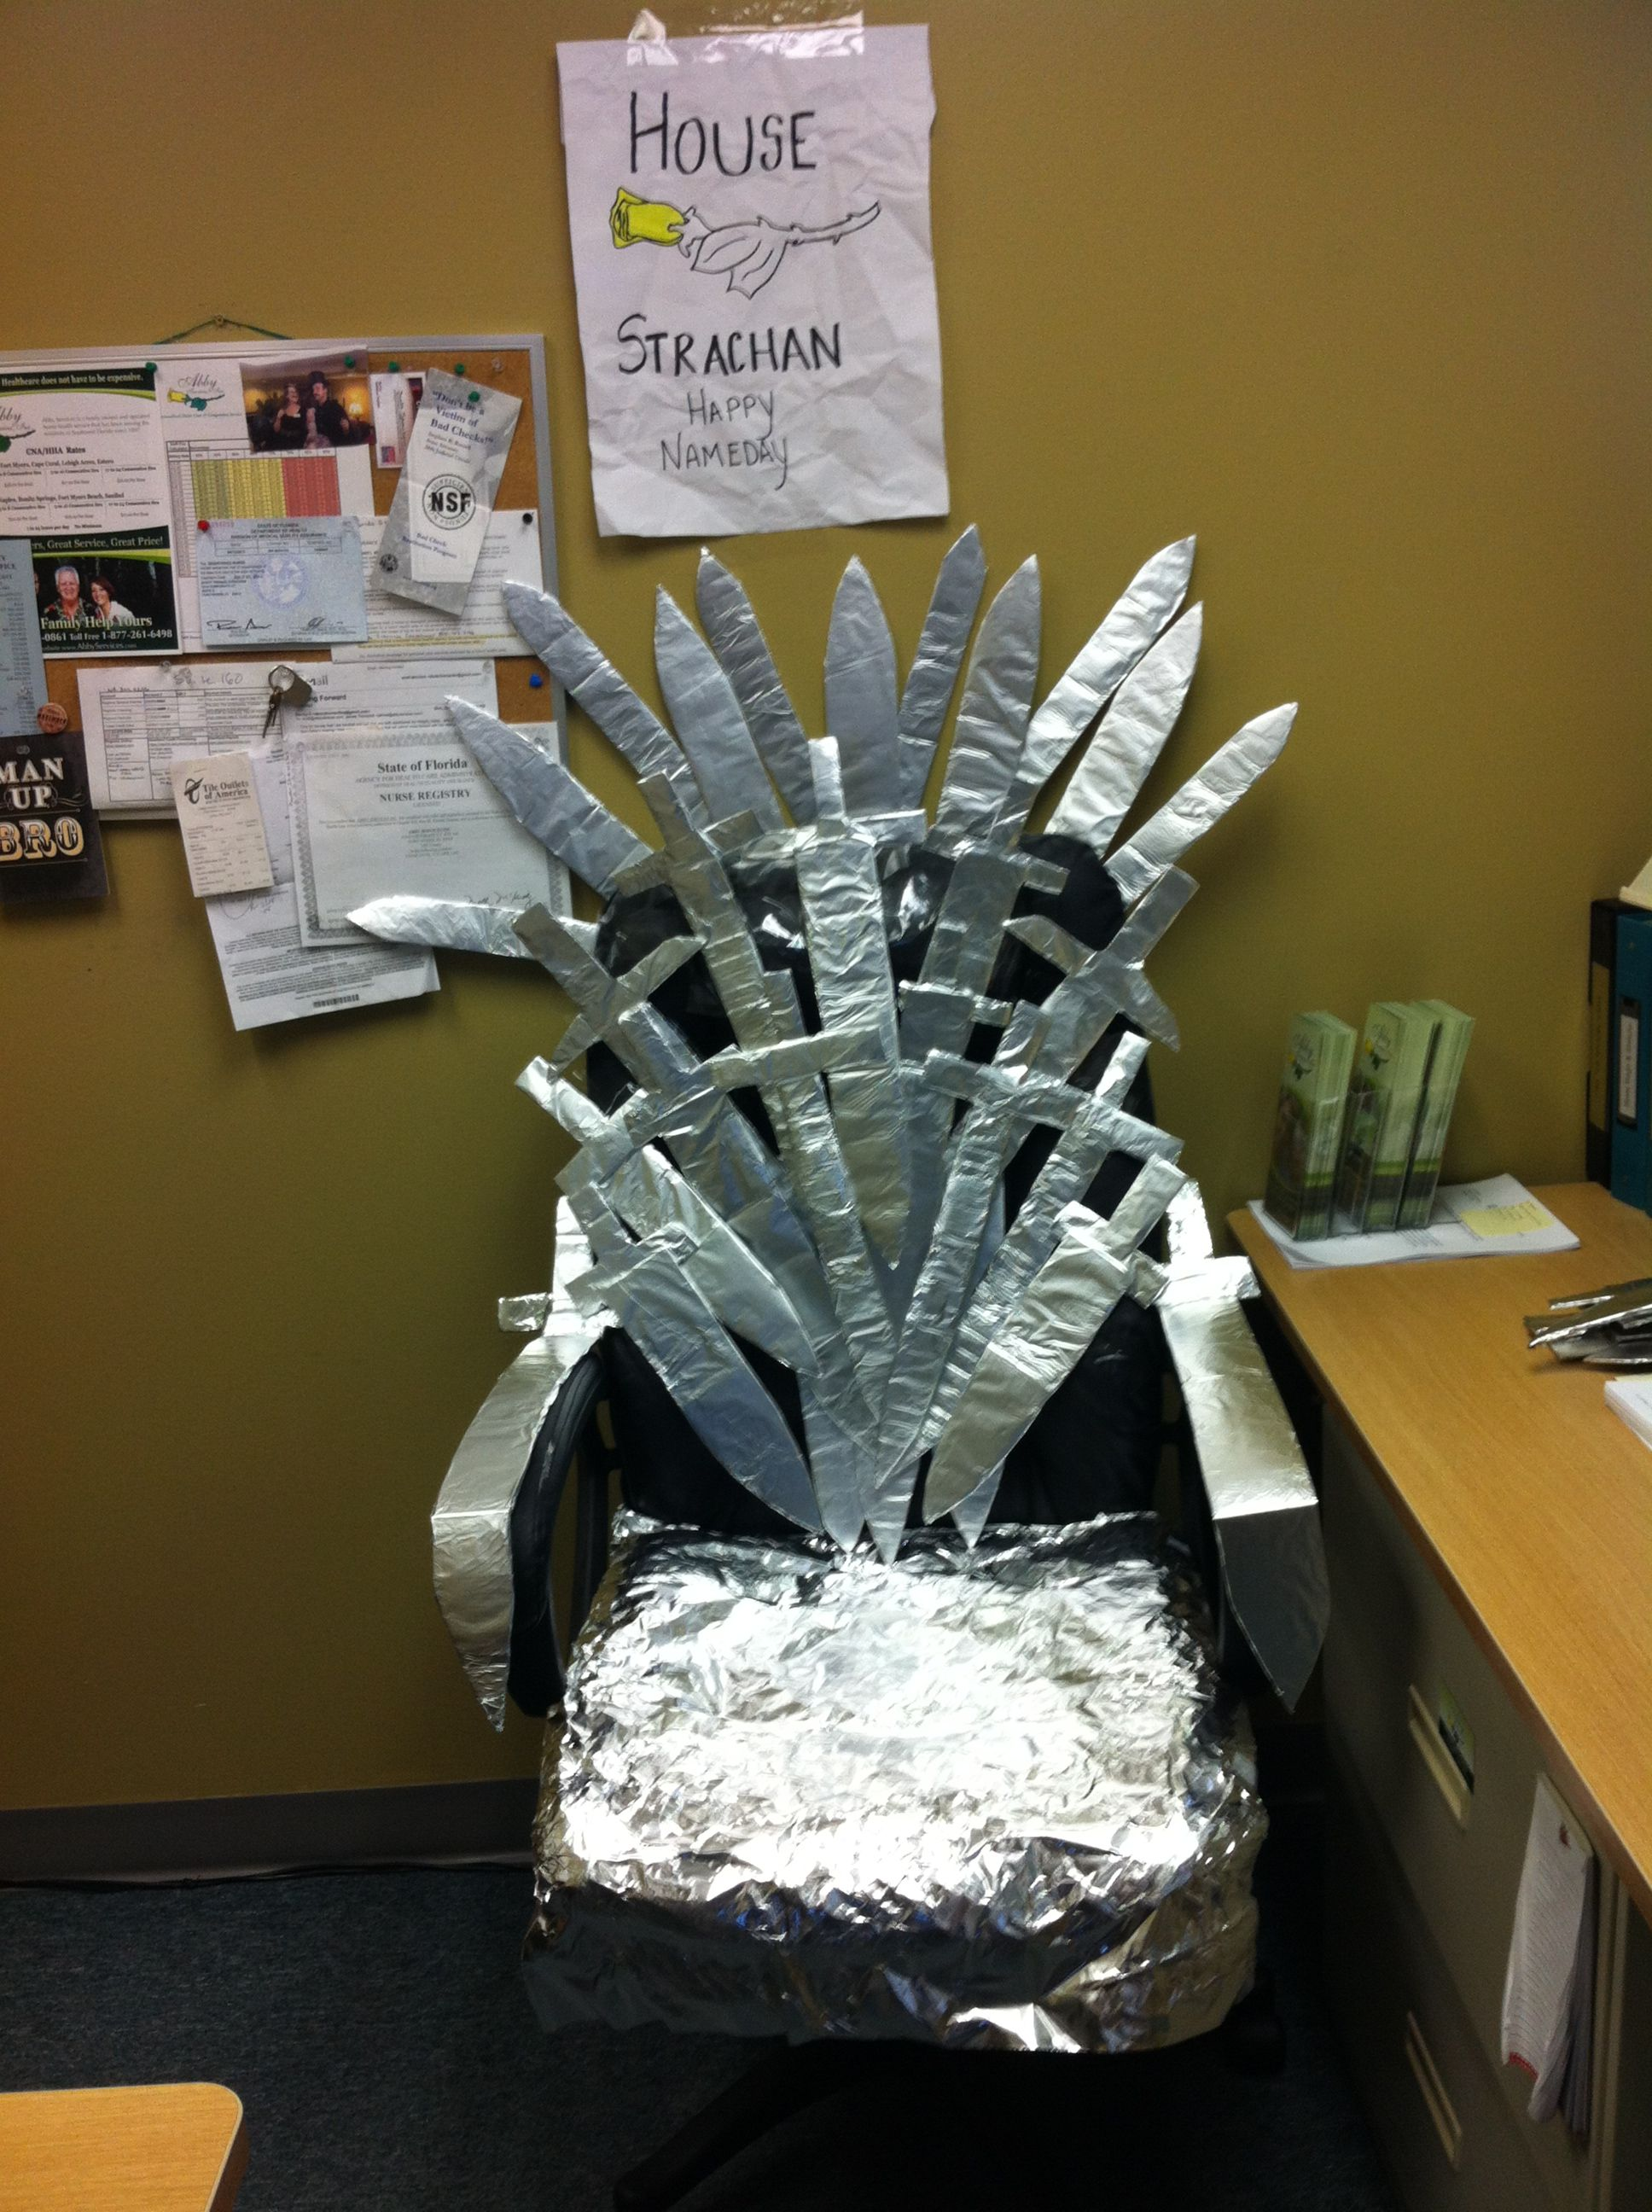 game of thrones office chair steel flipkart nameday love it